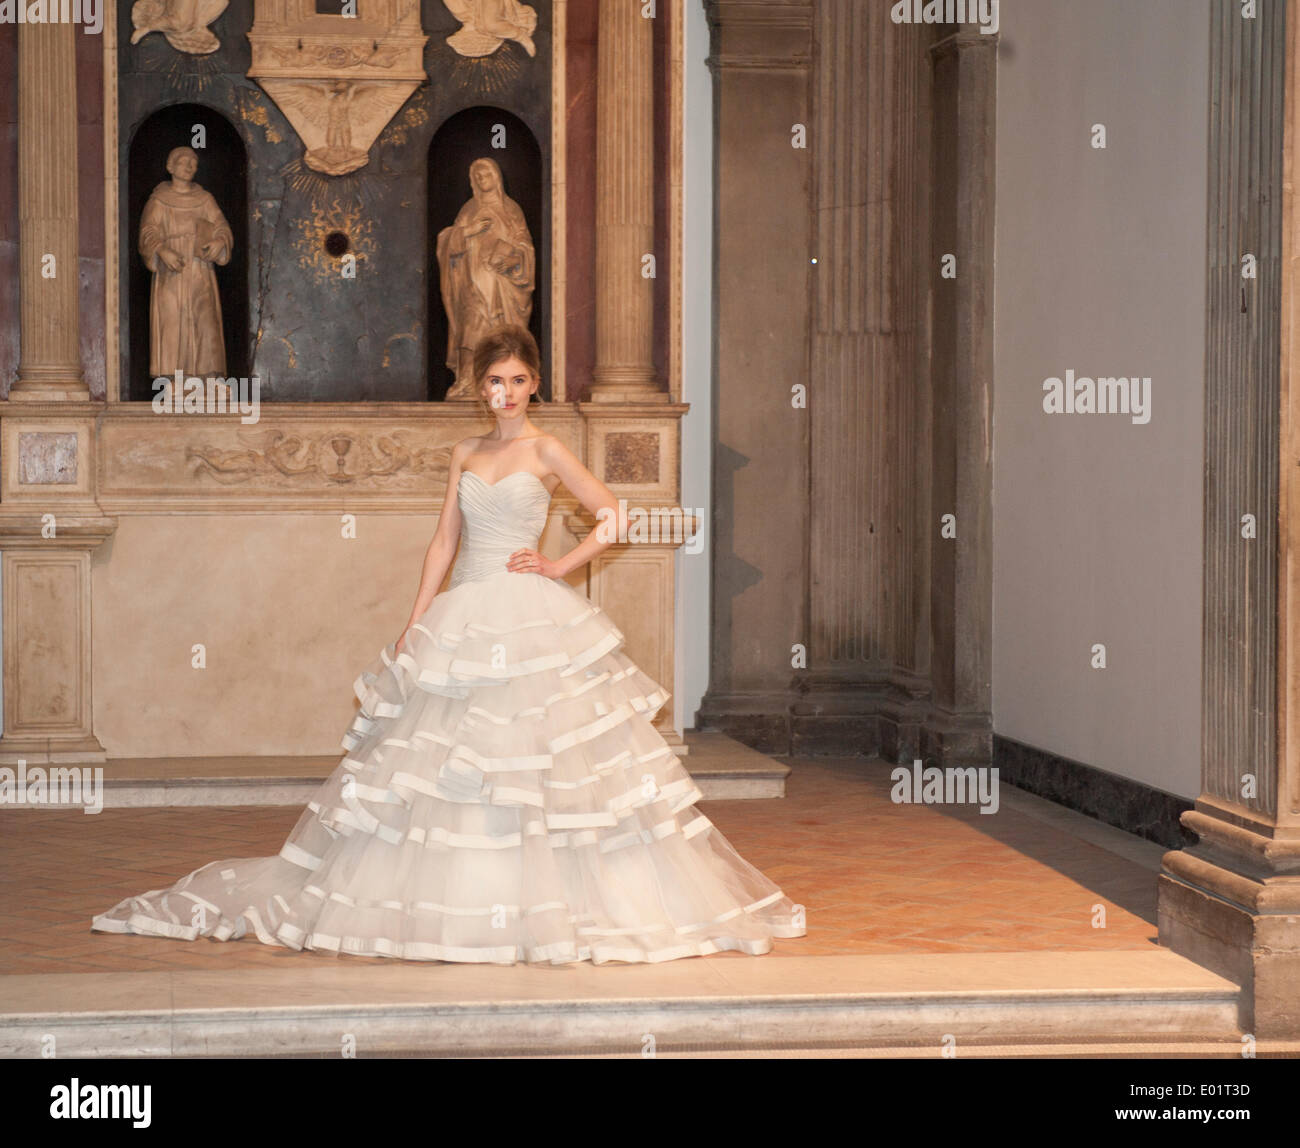 Victoria Albert Wedding Stockfotos & Victoria Albert Wedding Bilder ...